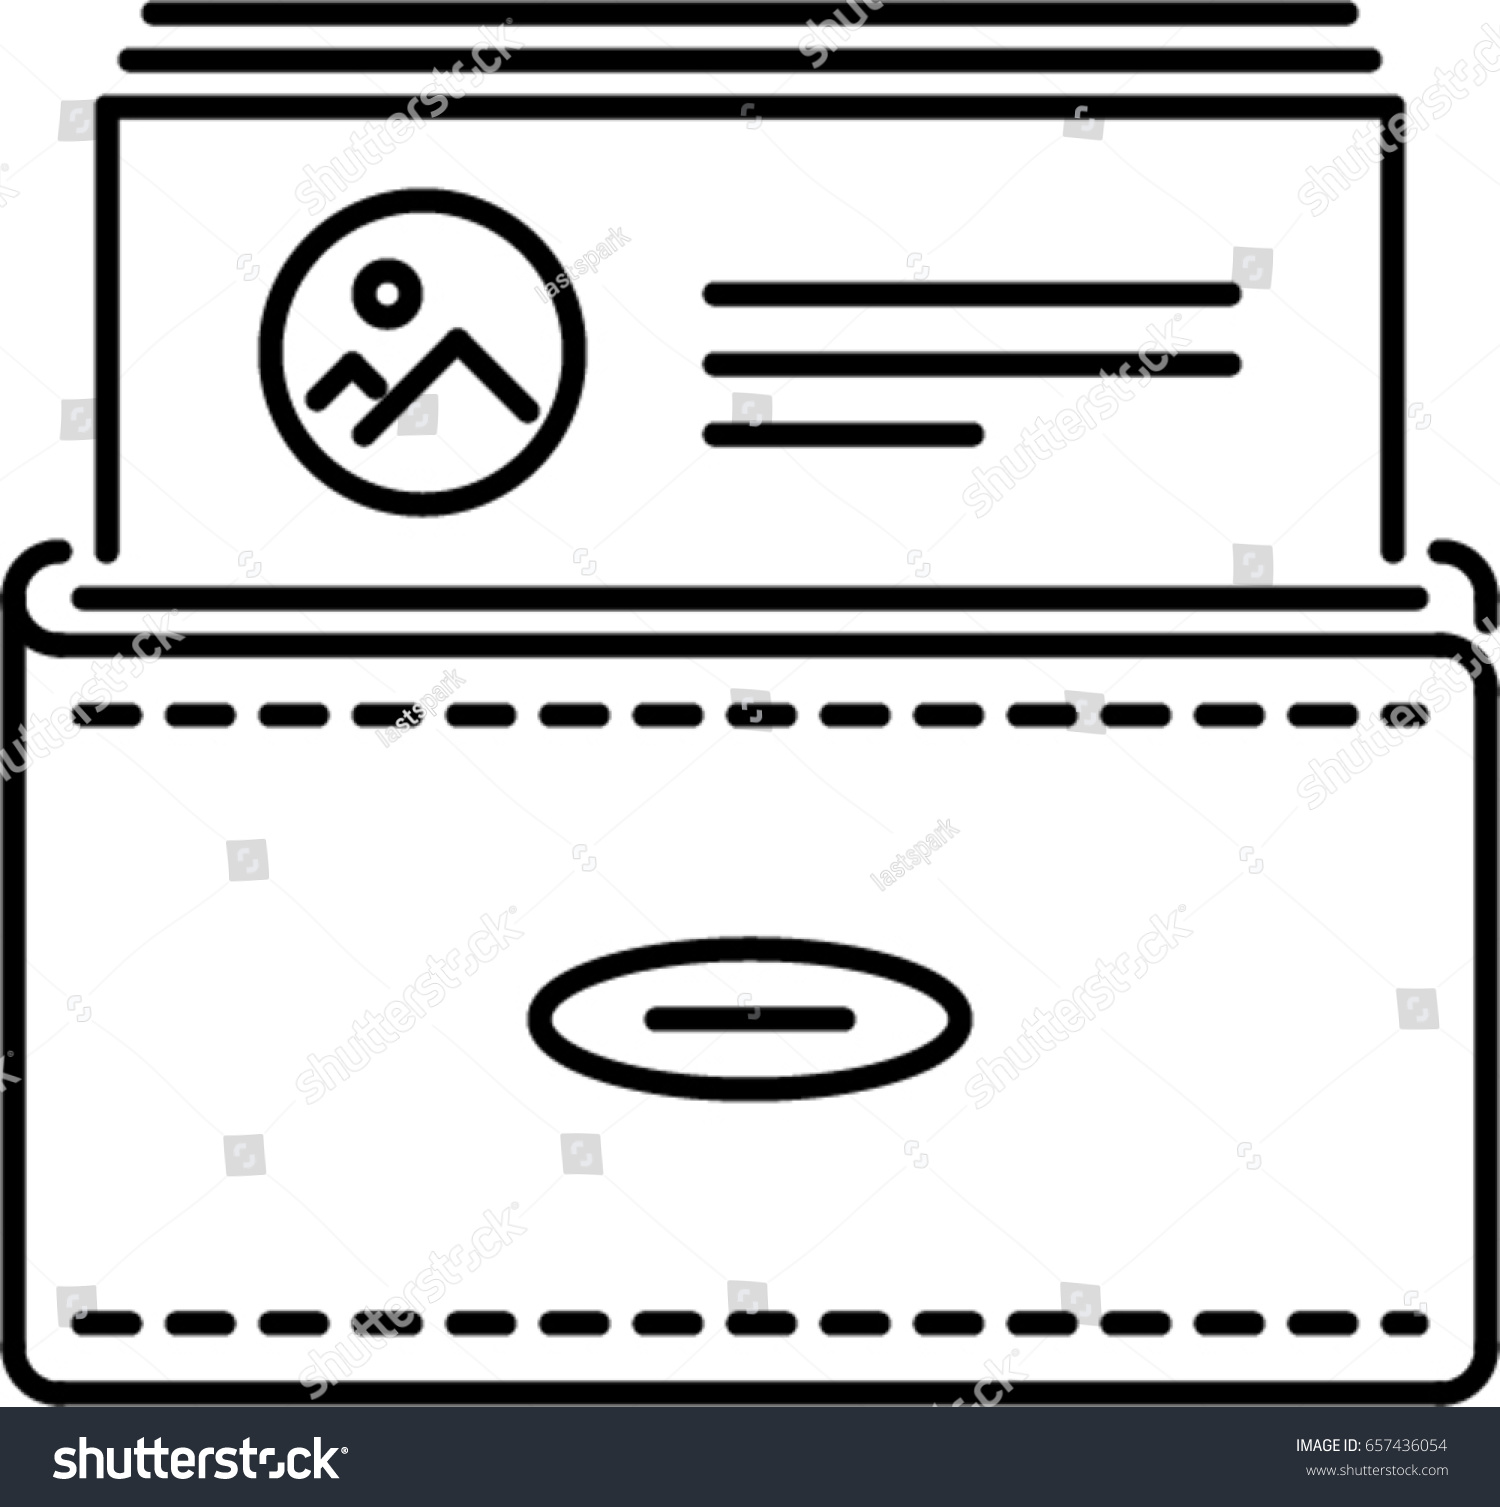 Business card outline icon stock vector 657436054 shutterstock business card outline icon colourmoves